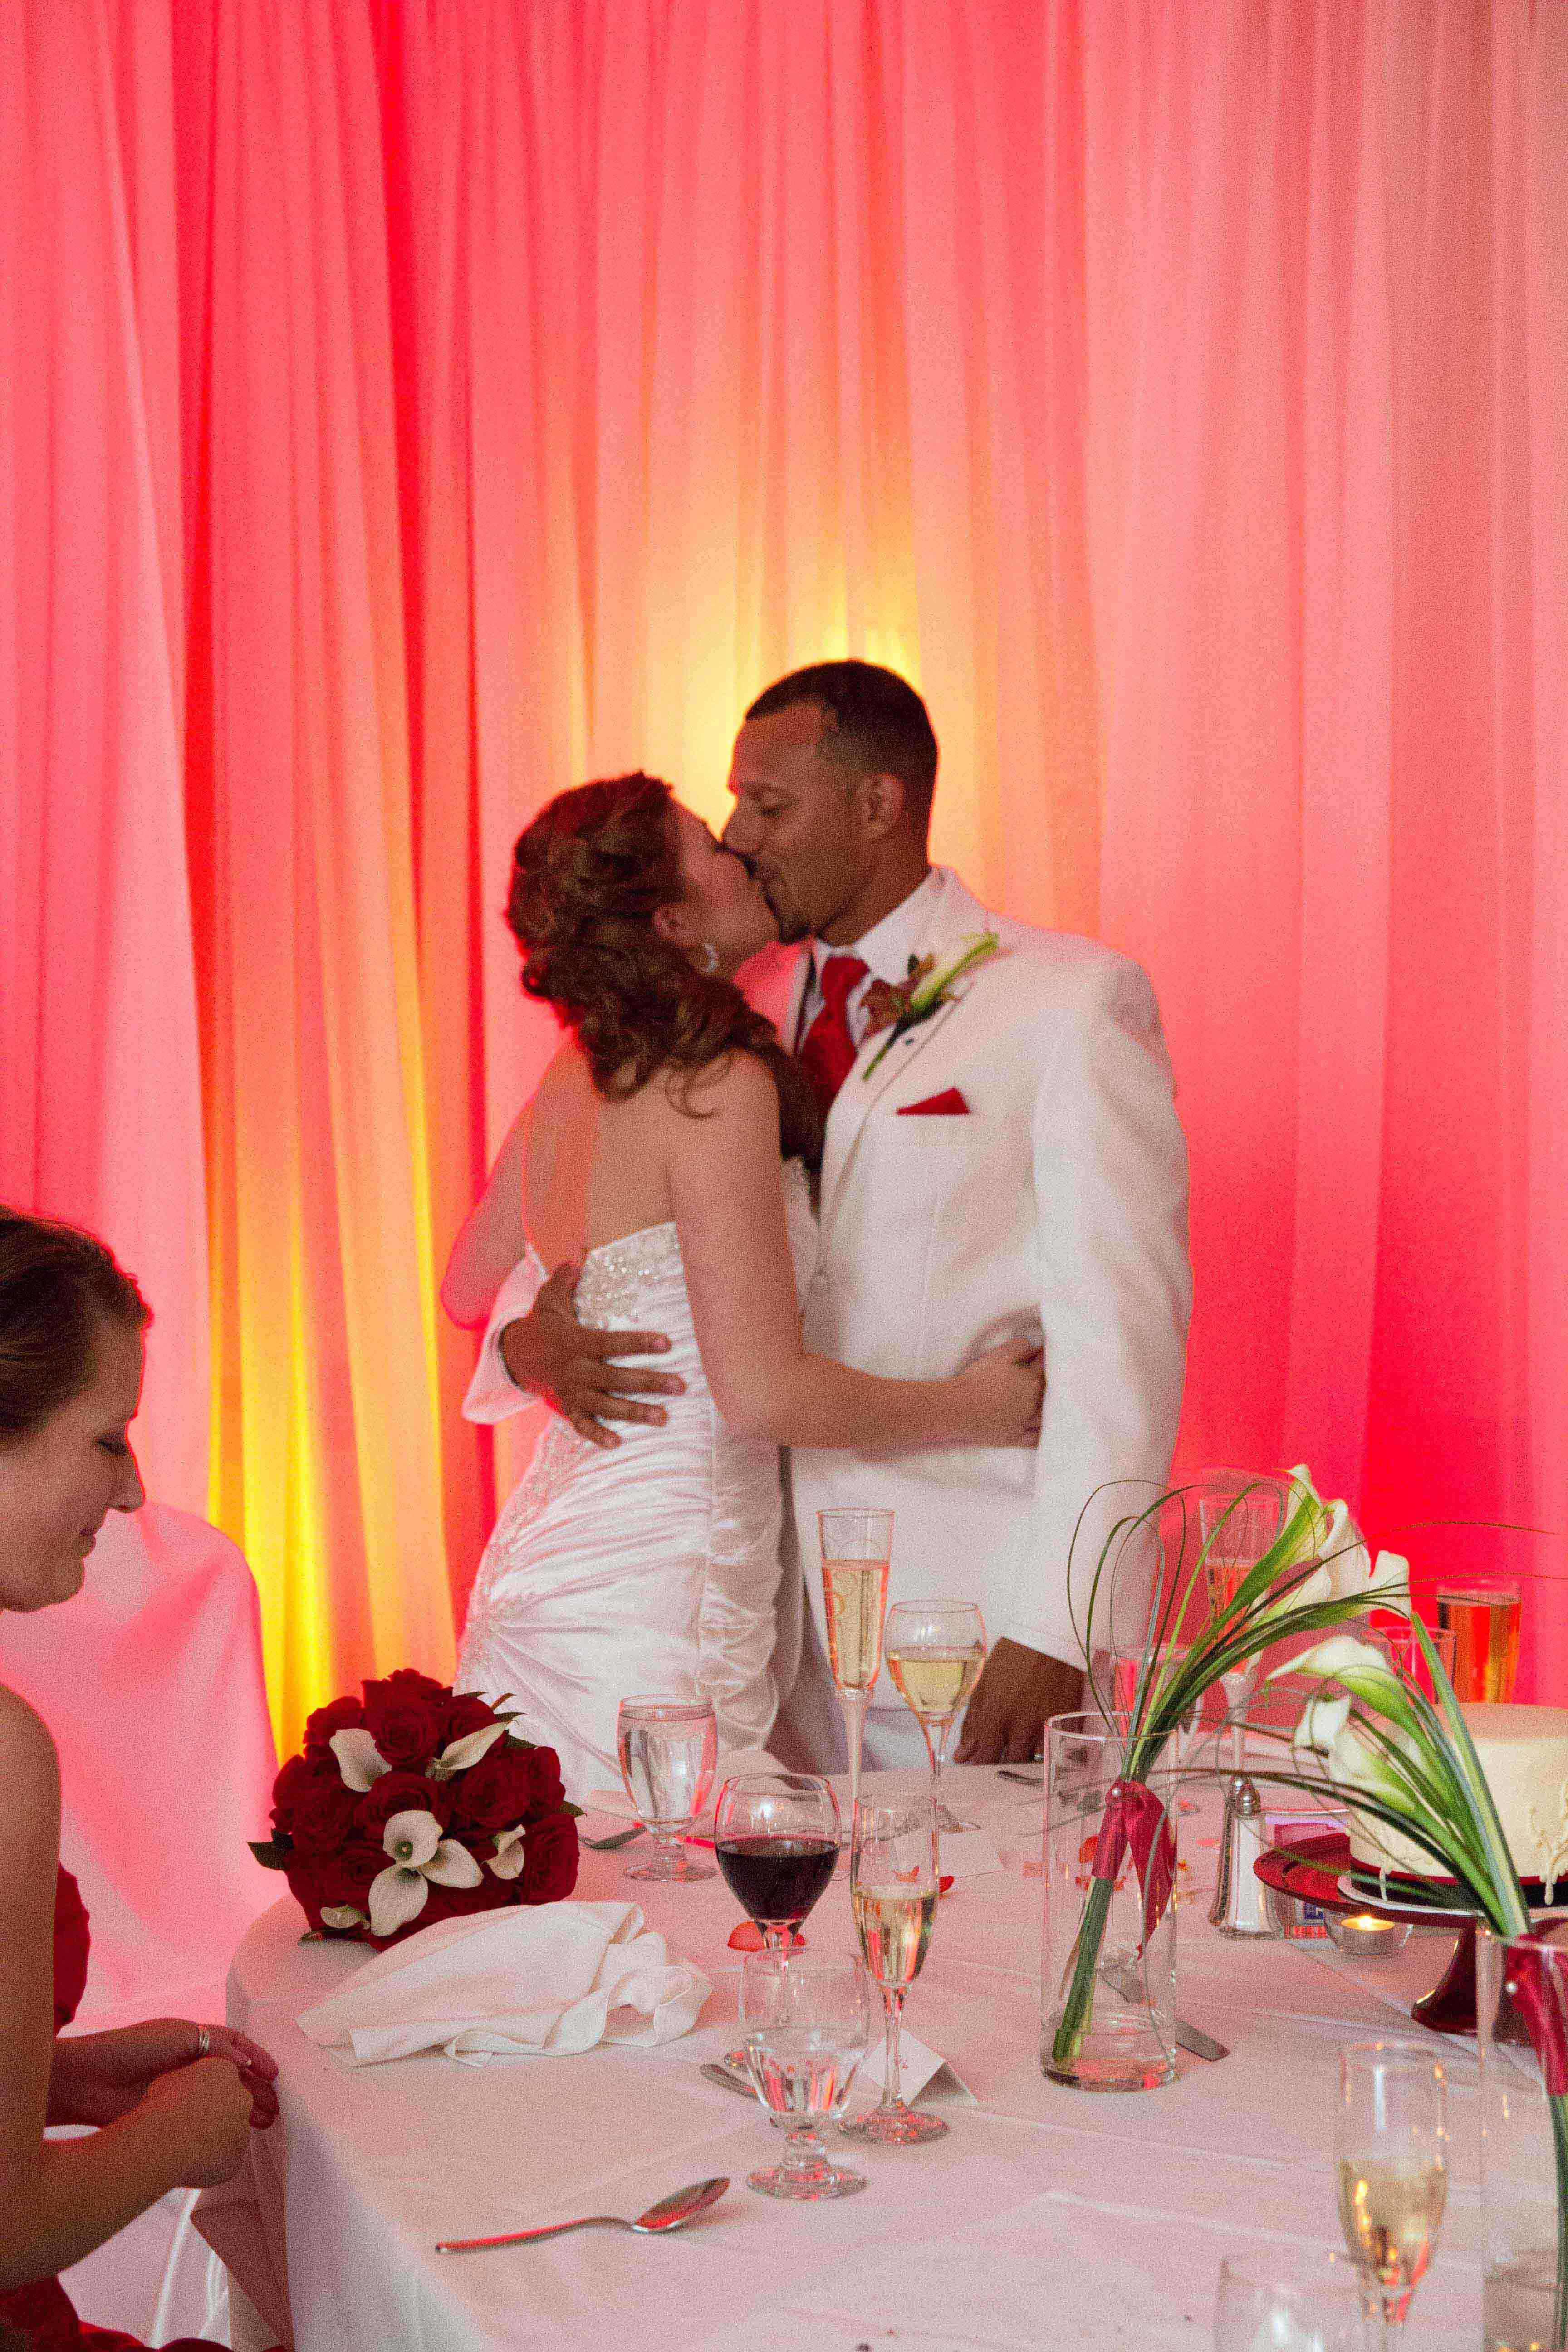 Wedding event background  Itus as if their love is setting the room on fire Photo by Heidi S